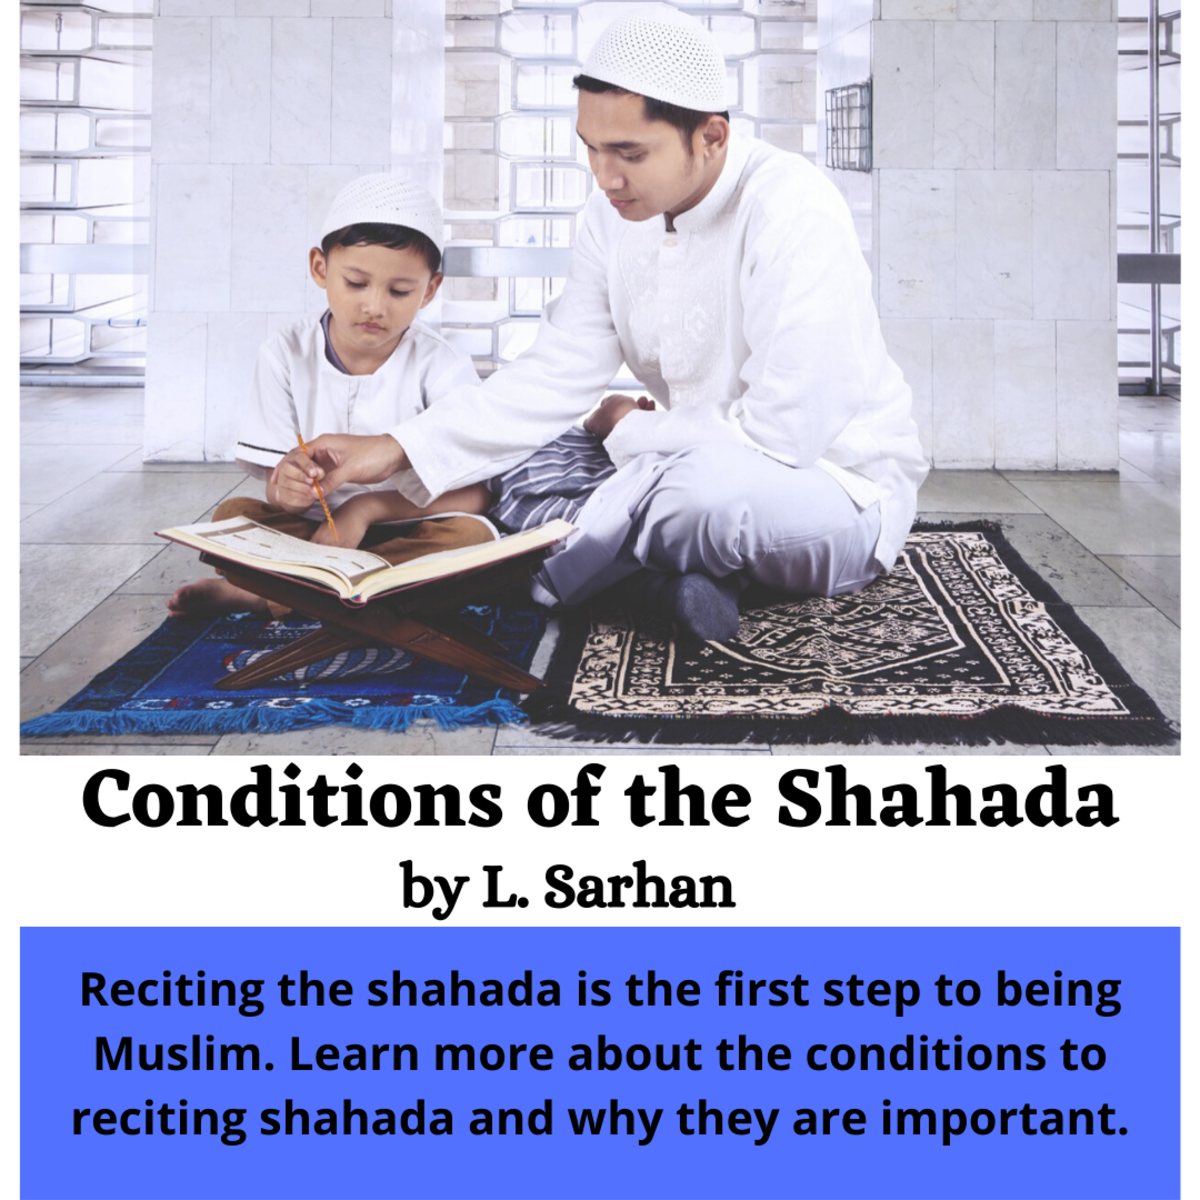 This article explains the conditions of the shahada. Because the Qu'ran states that there is no compulsory in religion, it is important to understand fully what the shahada really implies.